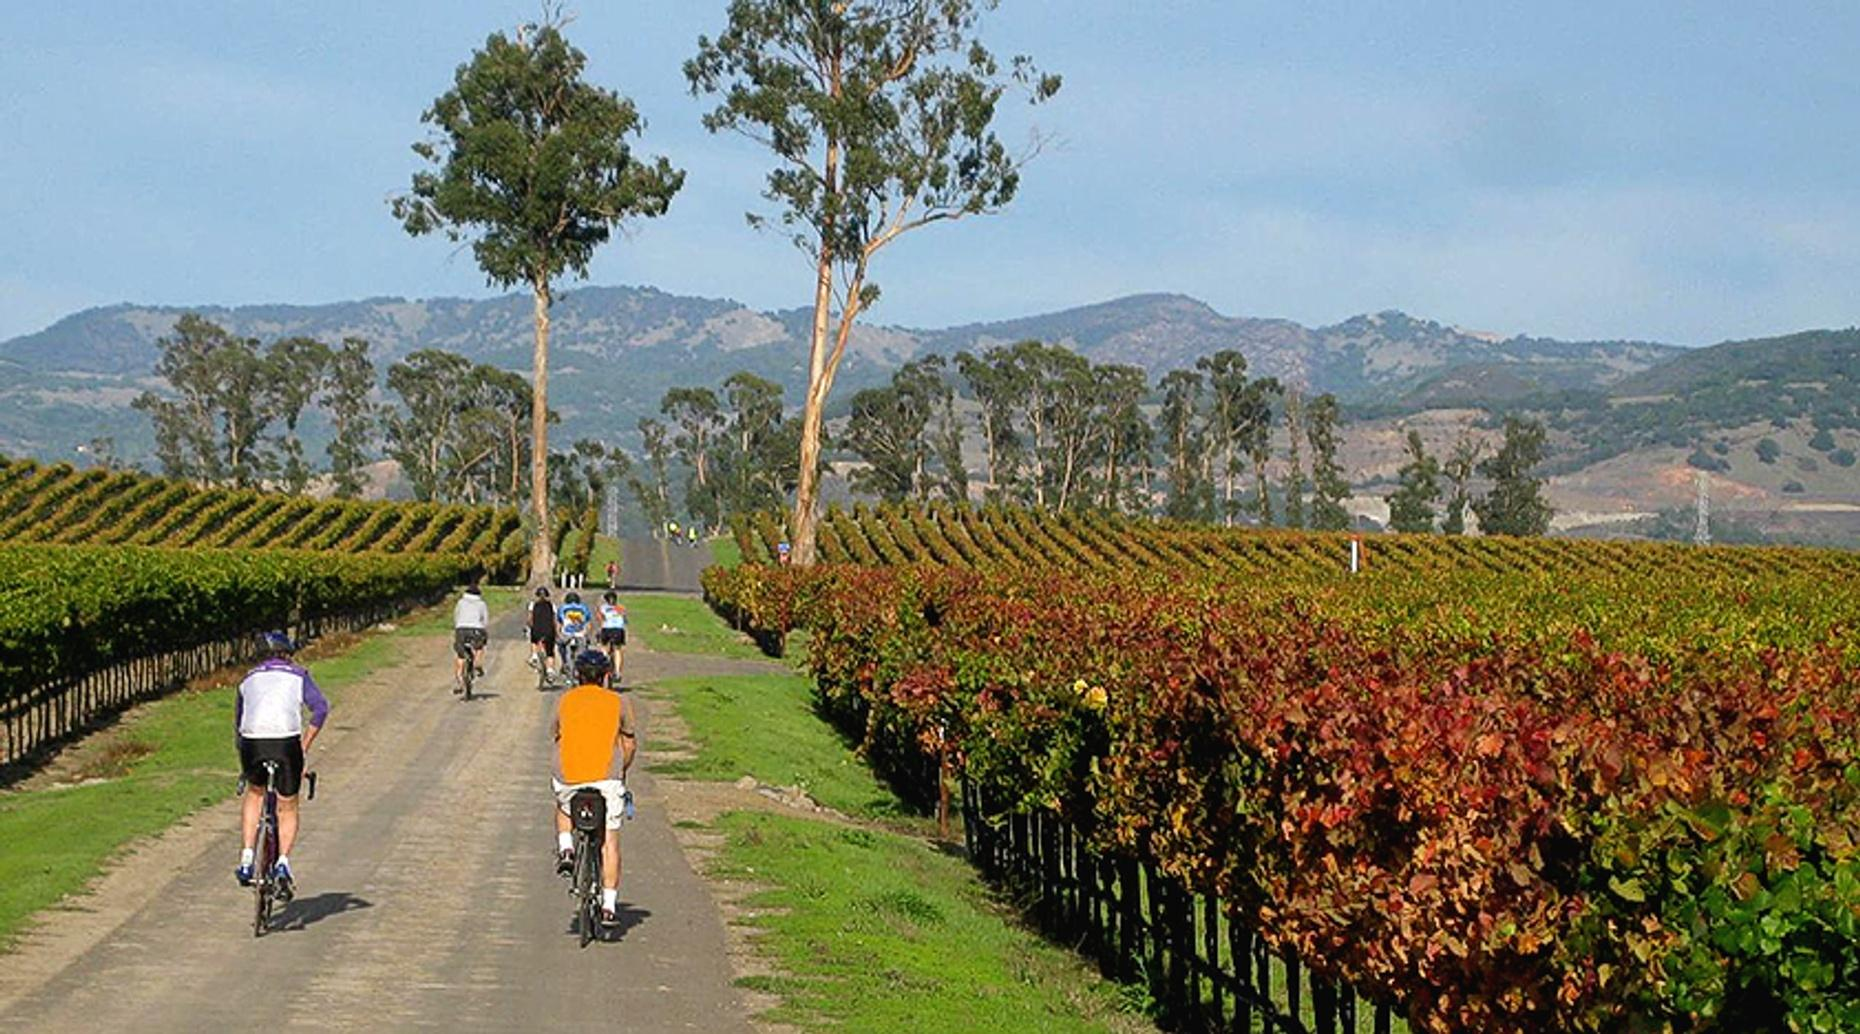 Scenic Vineyards Bike Tour in New Jersey